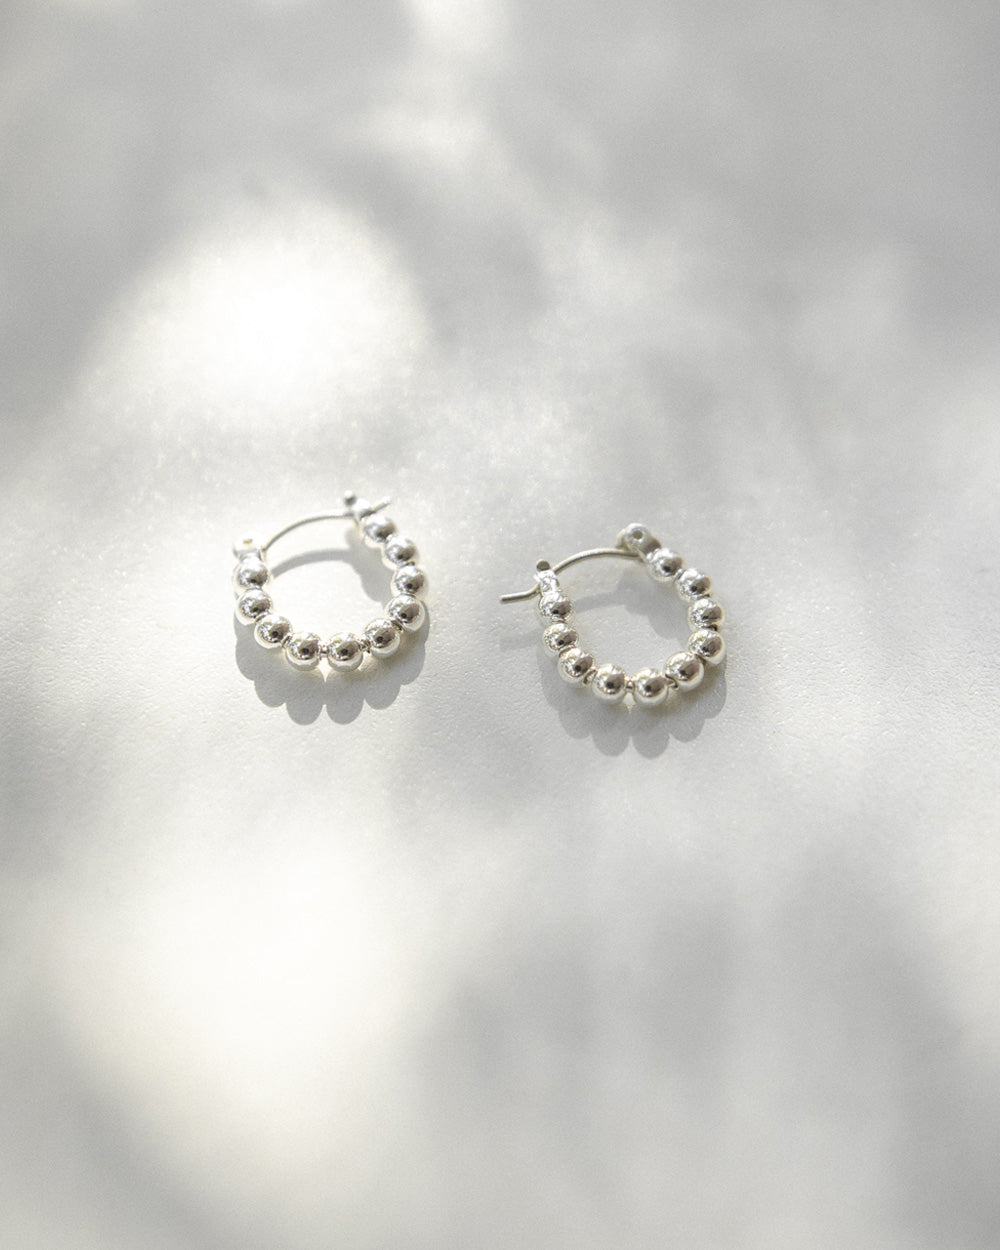 Minimalist silver hoop earrings with tiny spheres by The Hexad